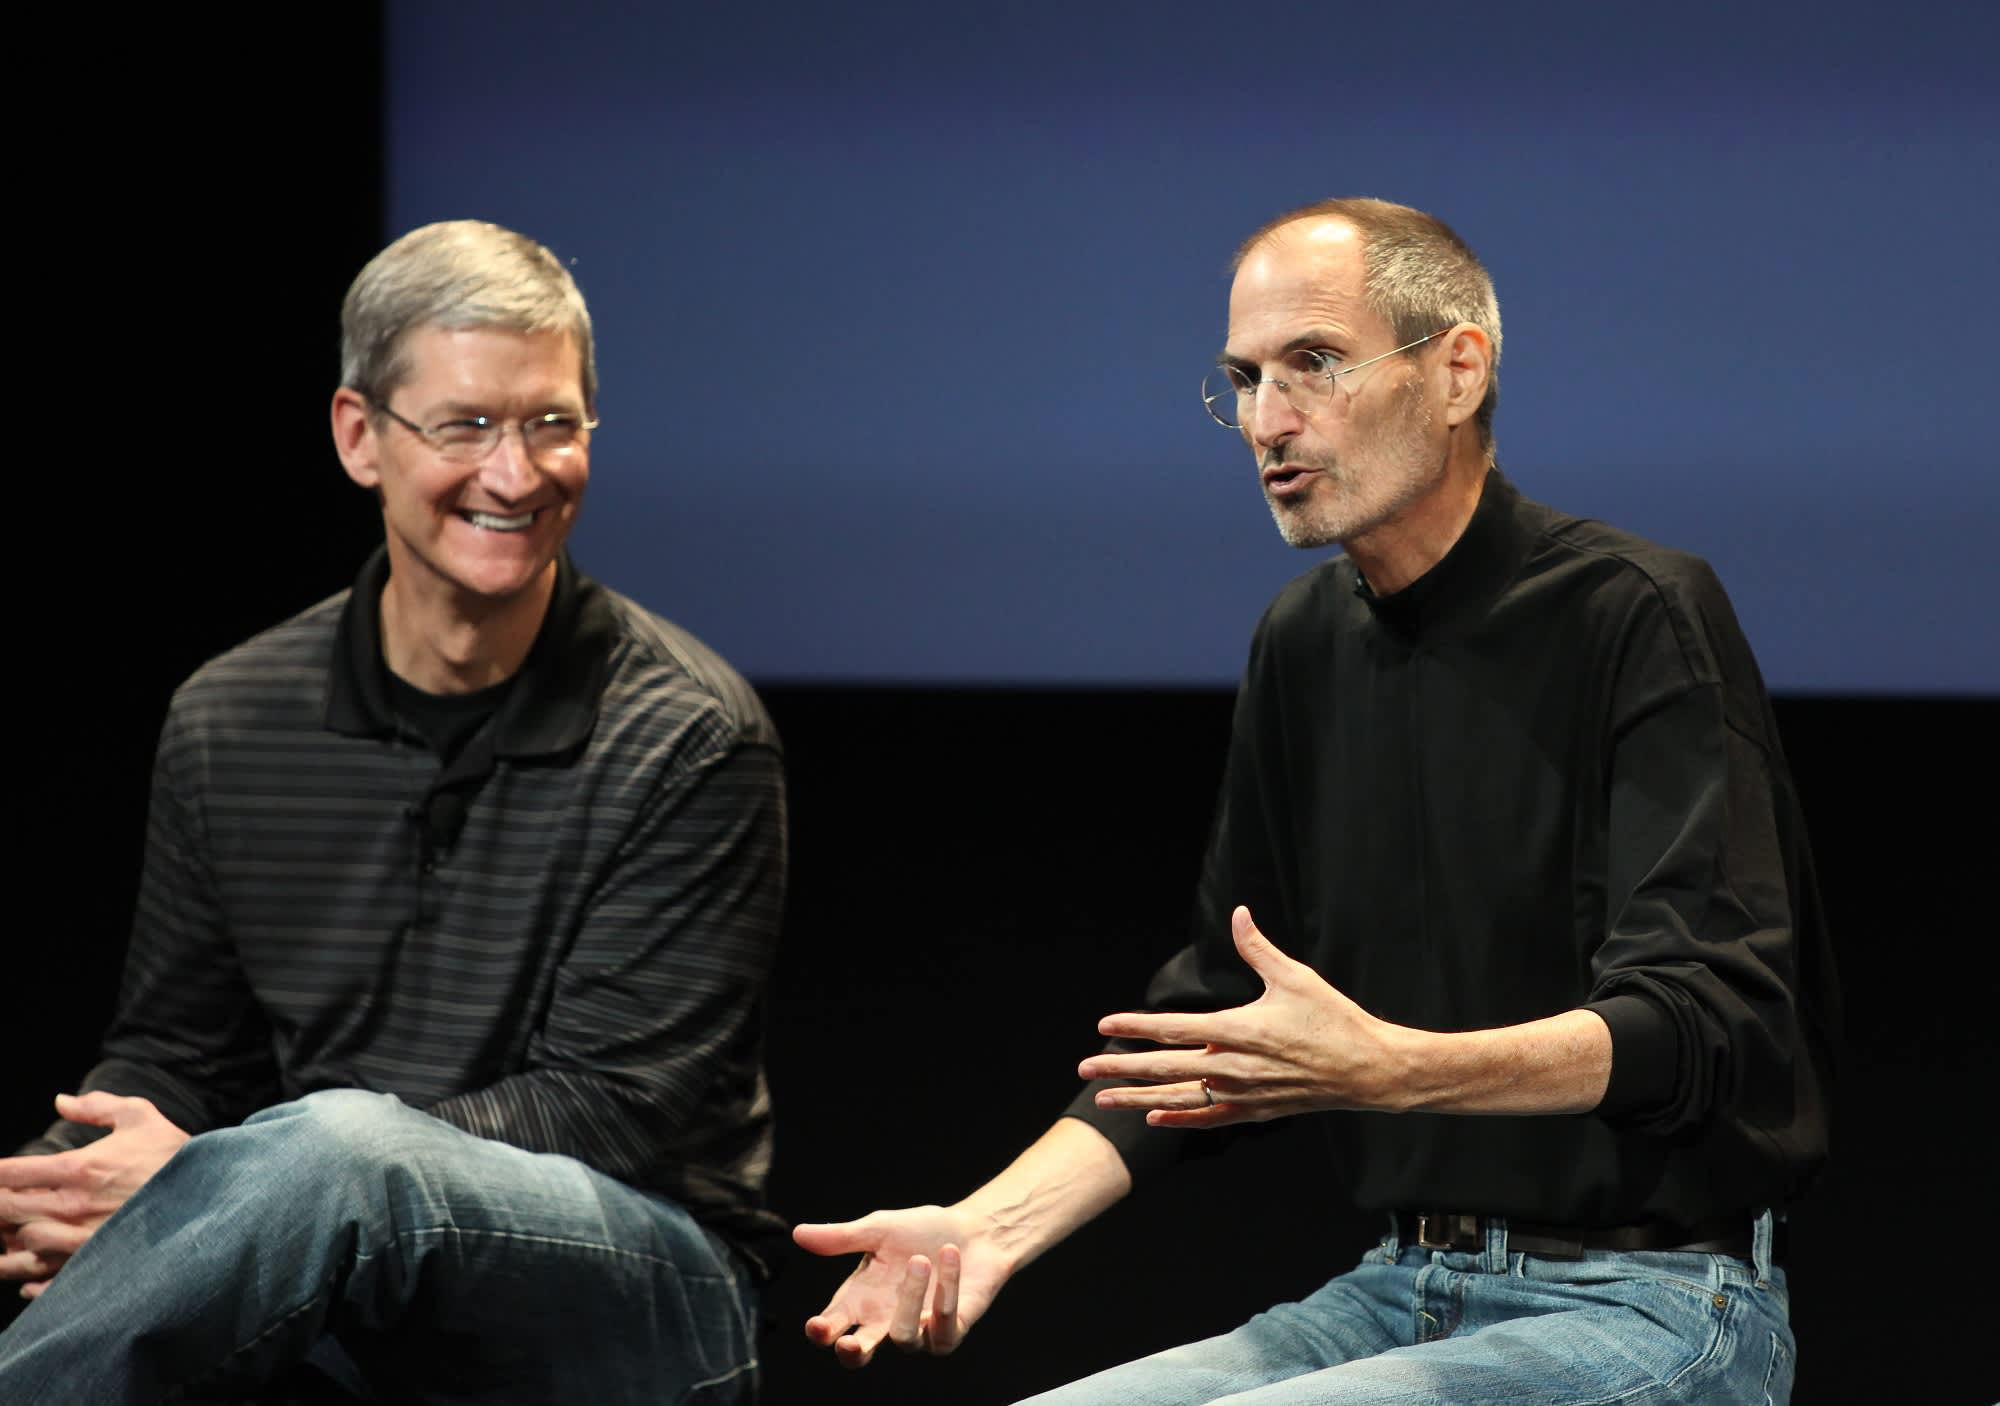 Josh Brown: In the time of China and Trump, Apple may be better off with Tim Cook as CEO